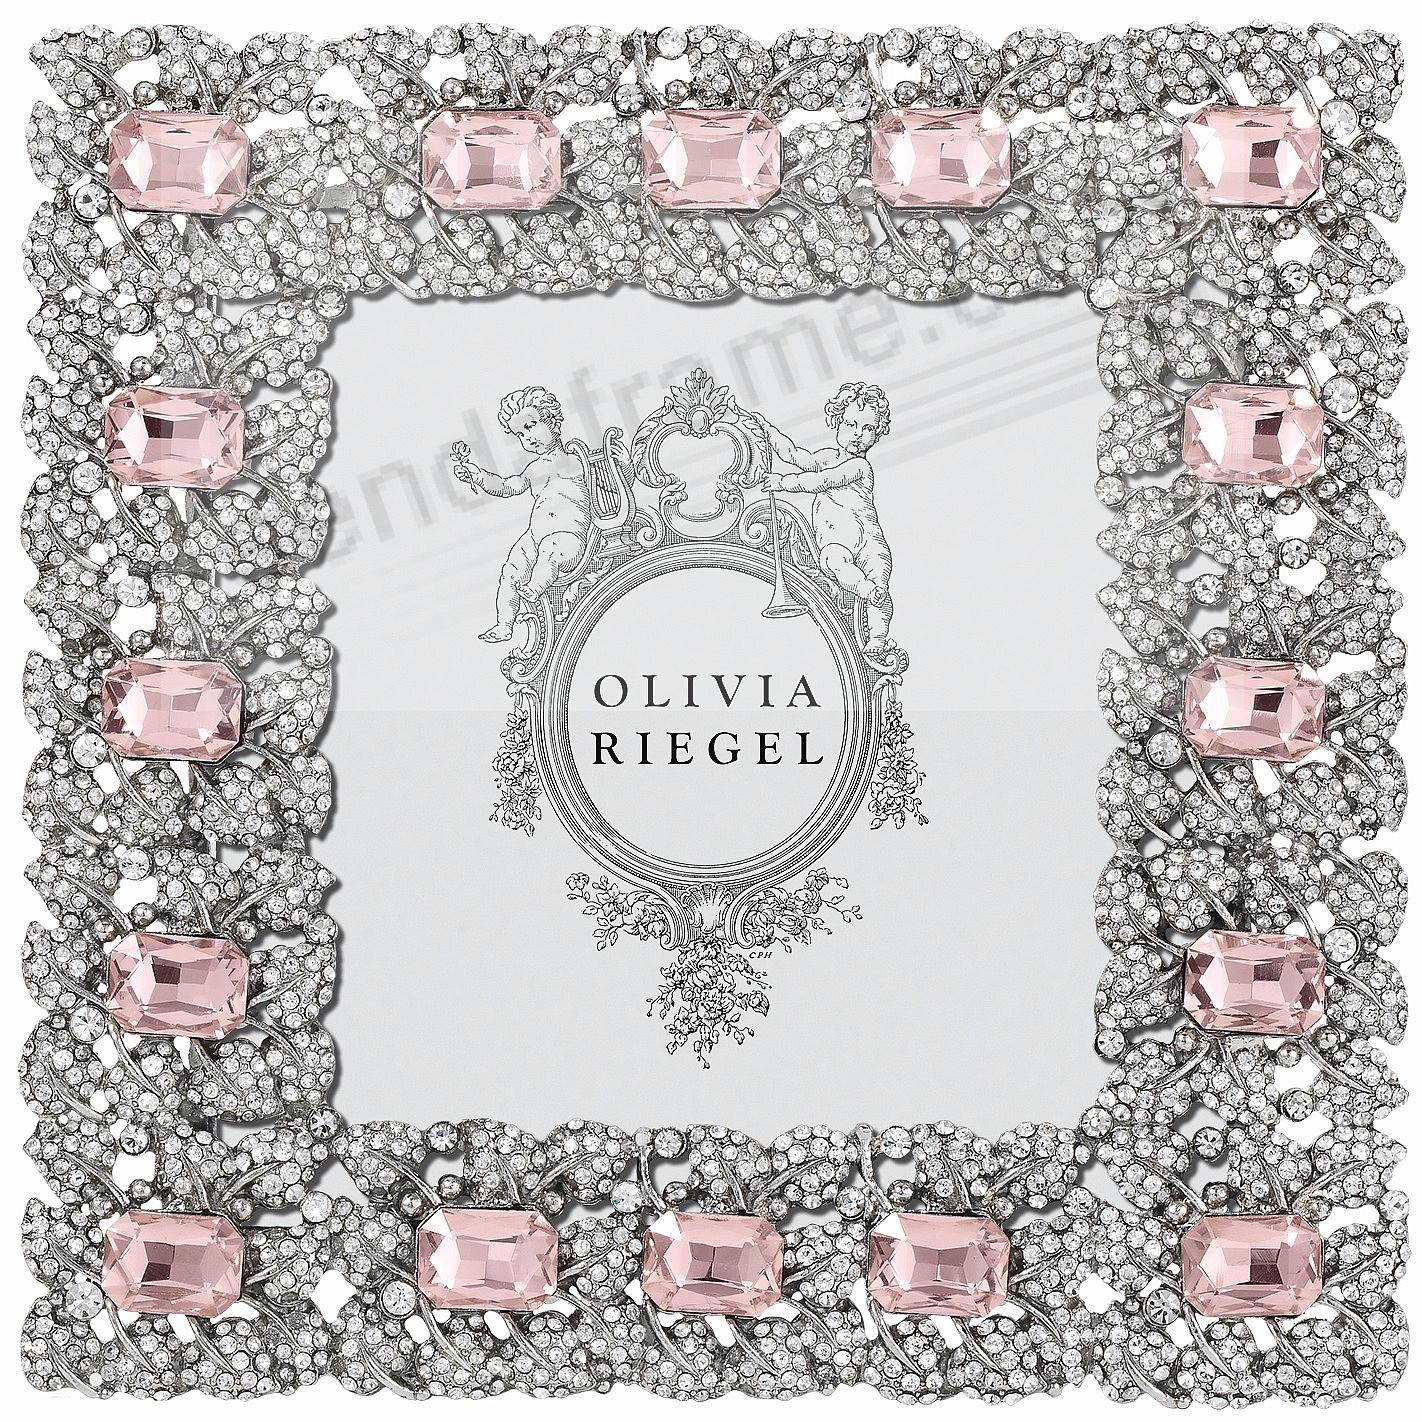 ROSE GENEVIEVE Crystal 4x4 frame by Olivia Riegel® - Picture Frames